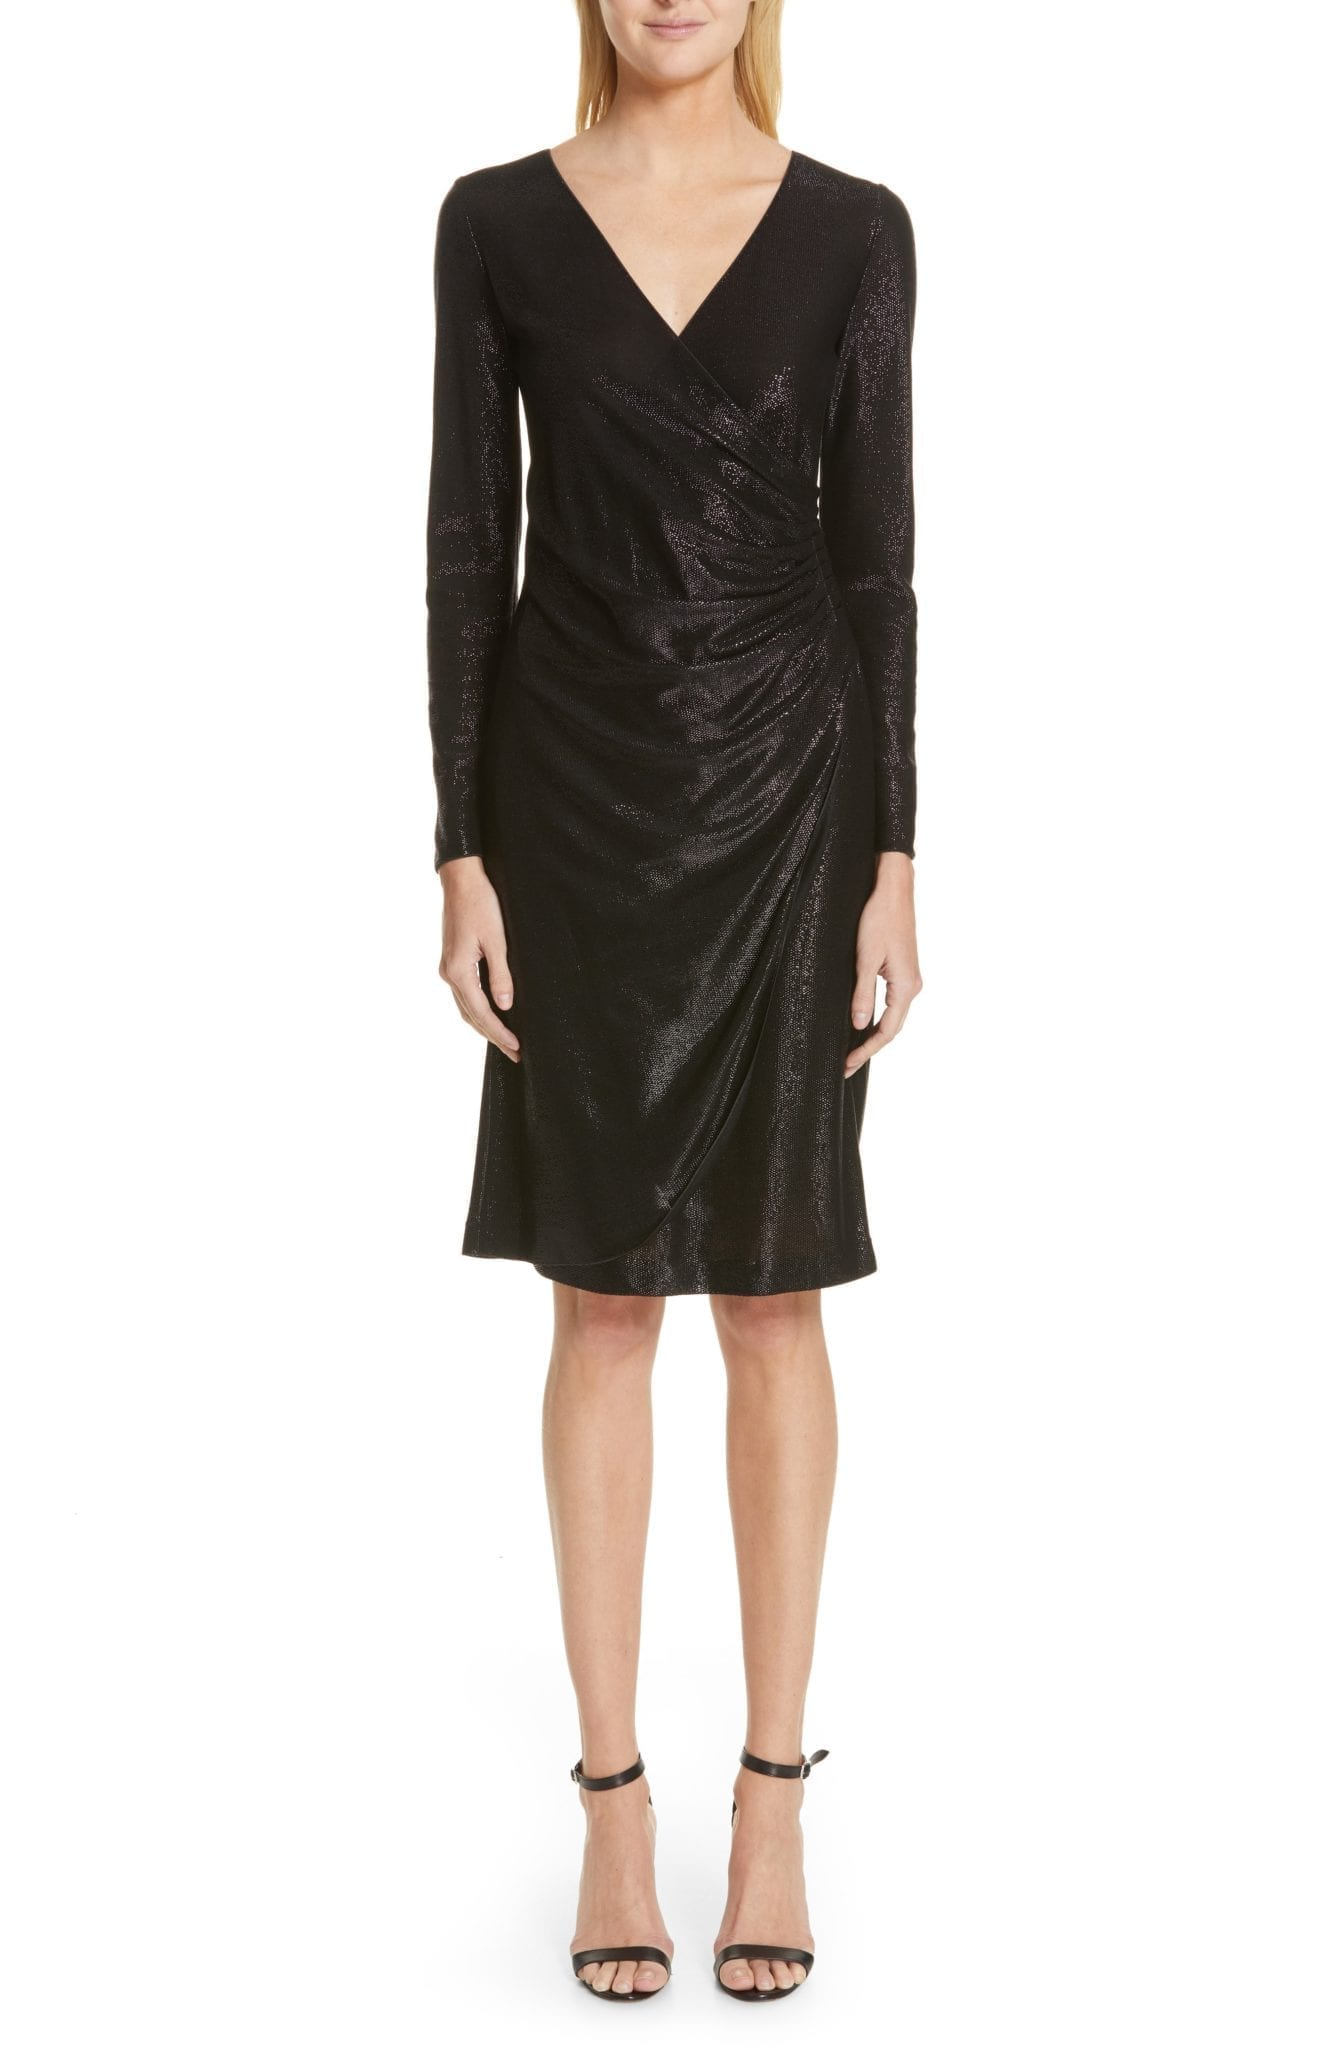 EMPORIO ARMANI Metallic Surplice Nero Dress